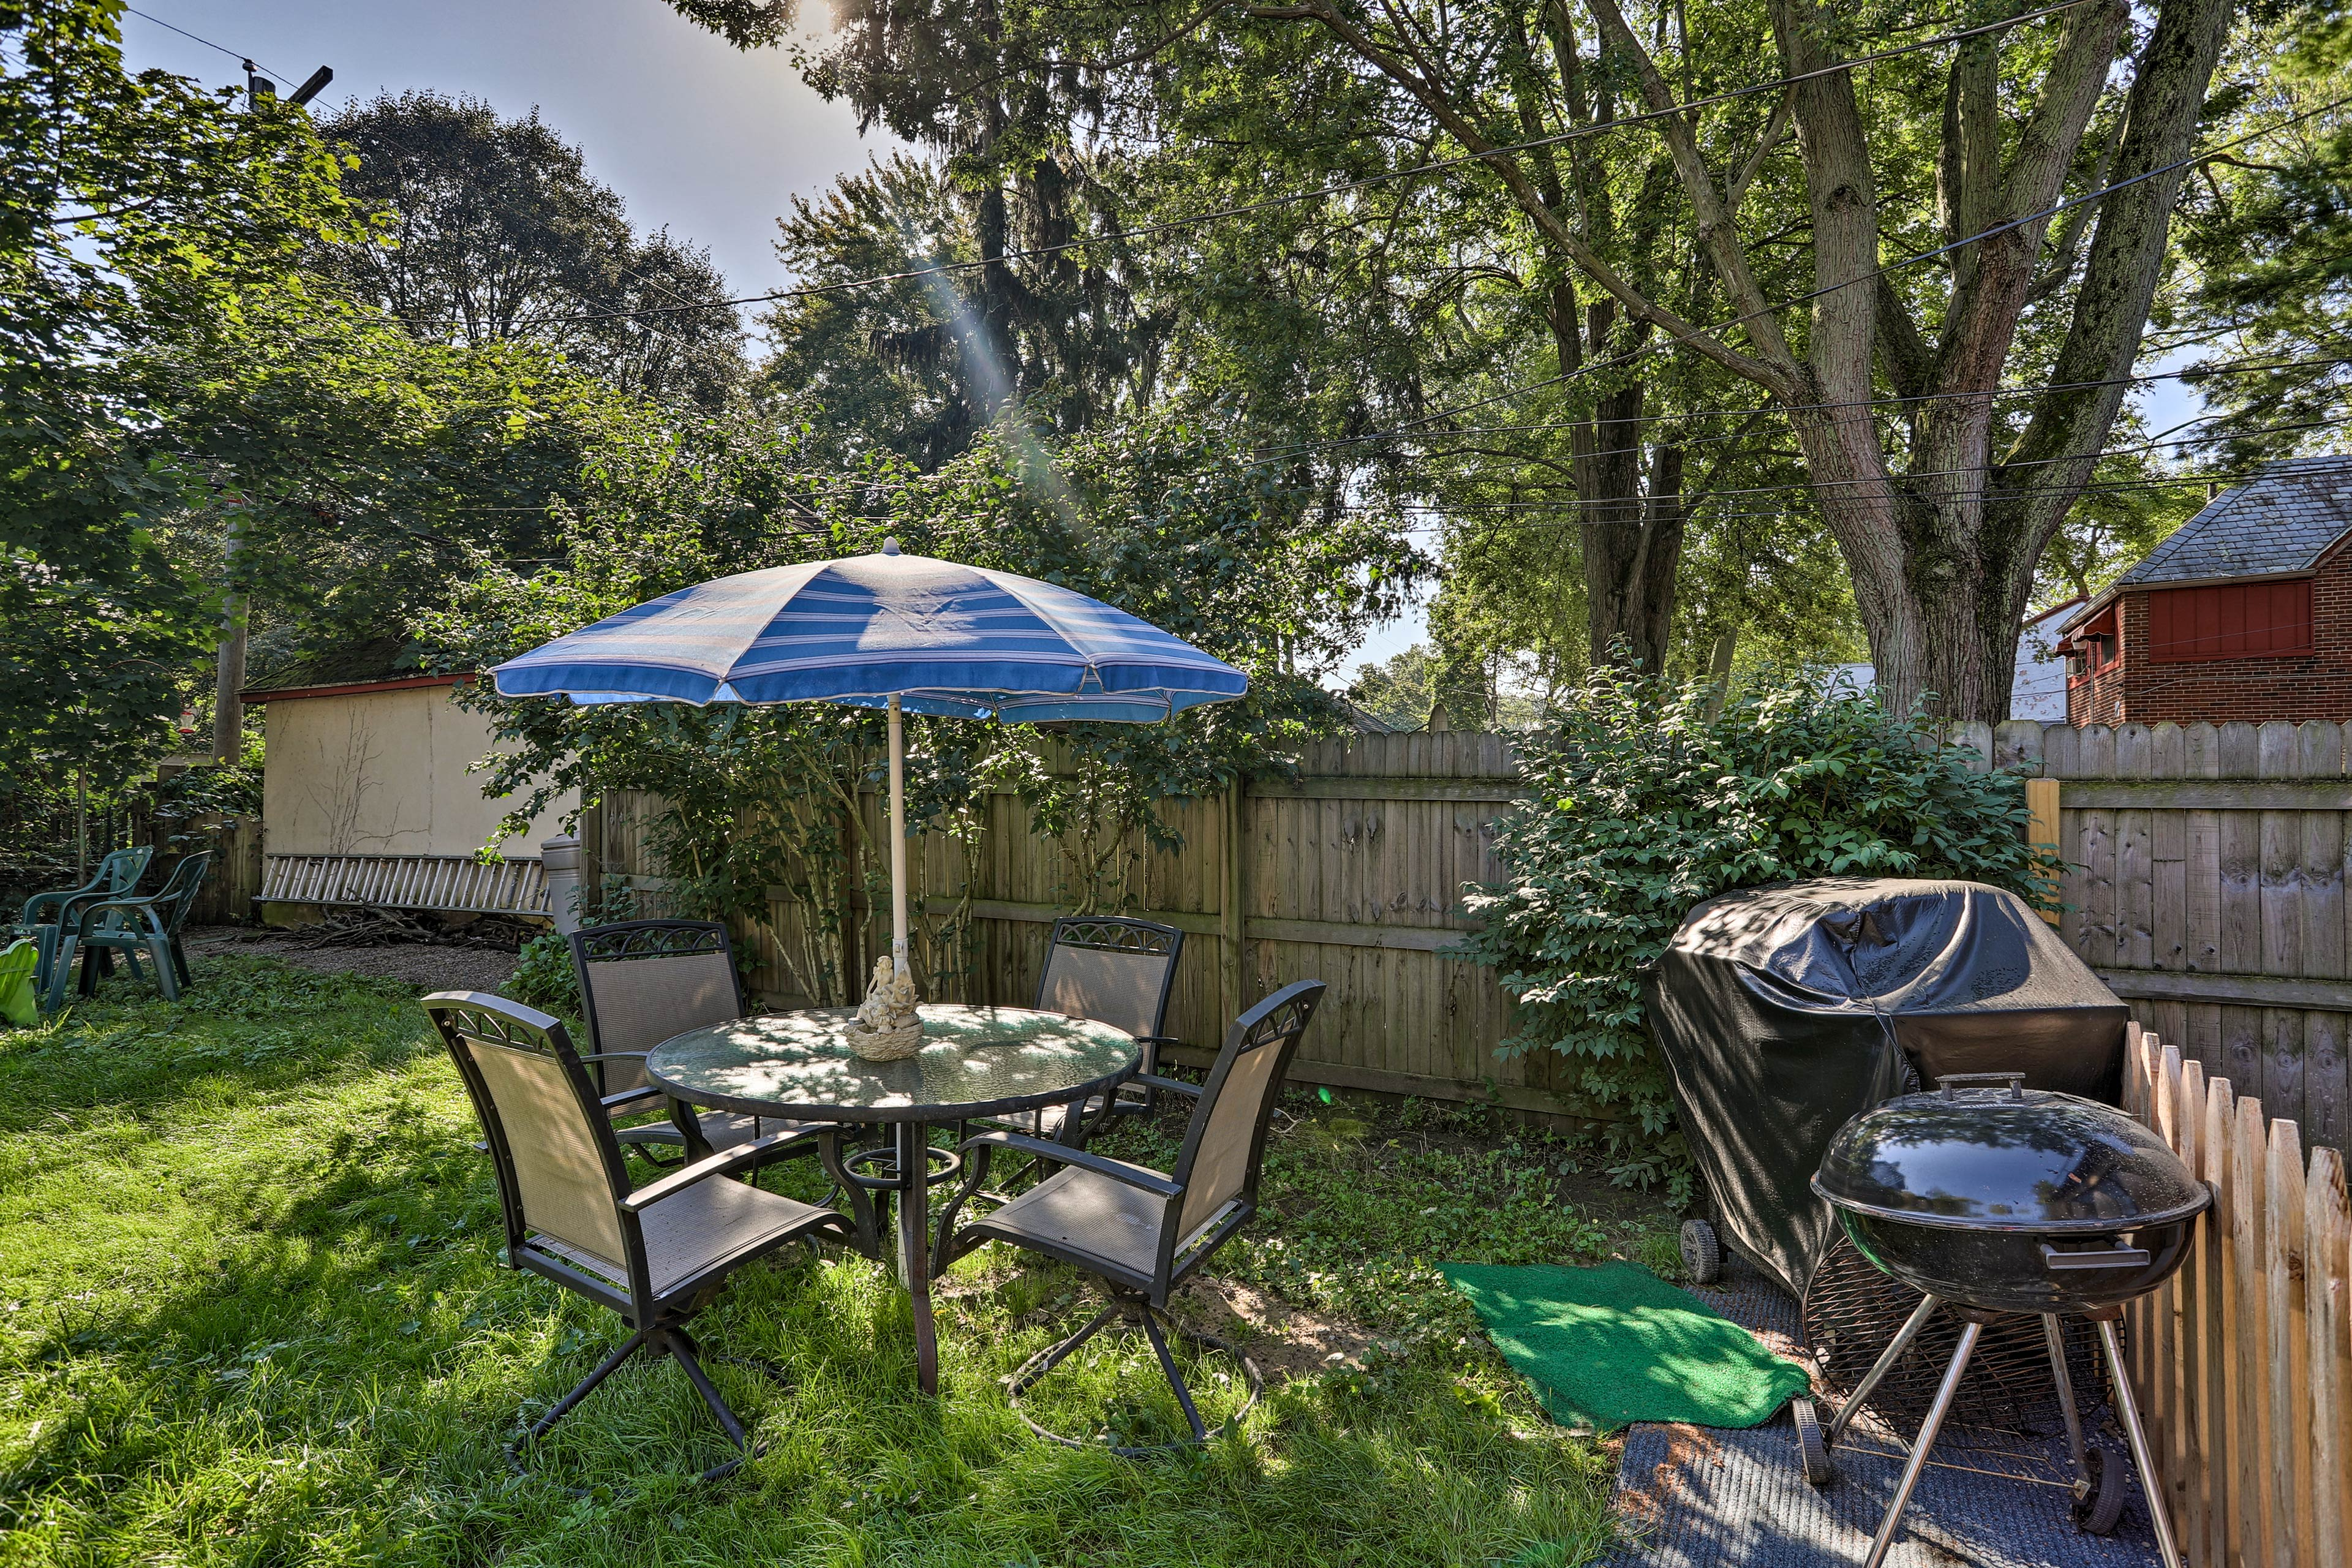 Fire up the gas or charcoal grill & throw a backyard BBQ!